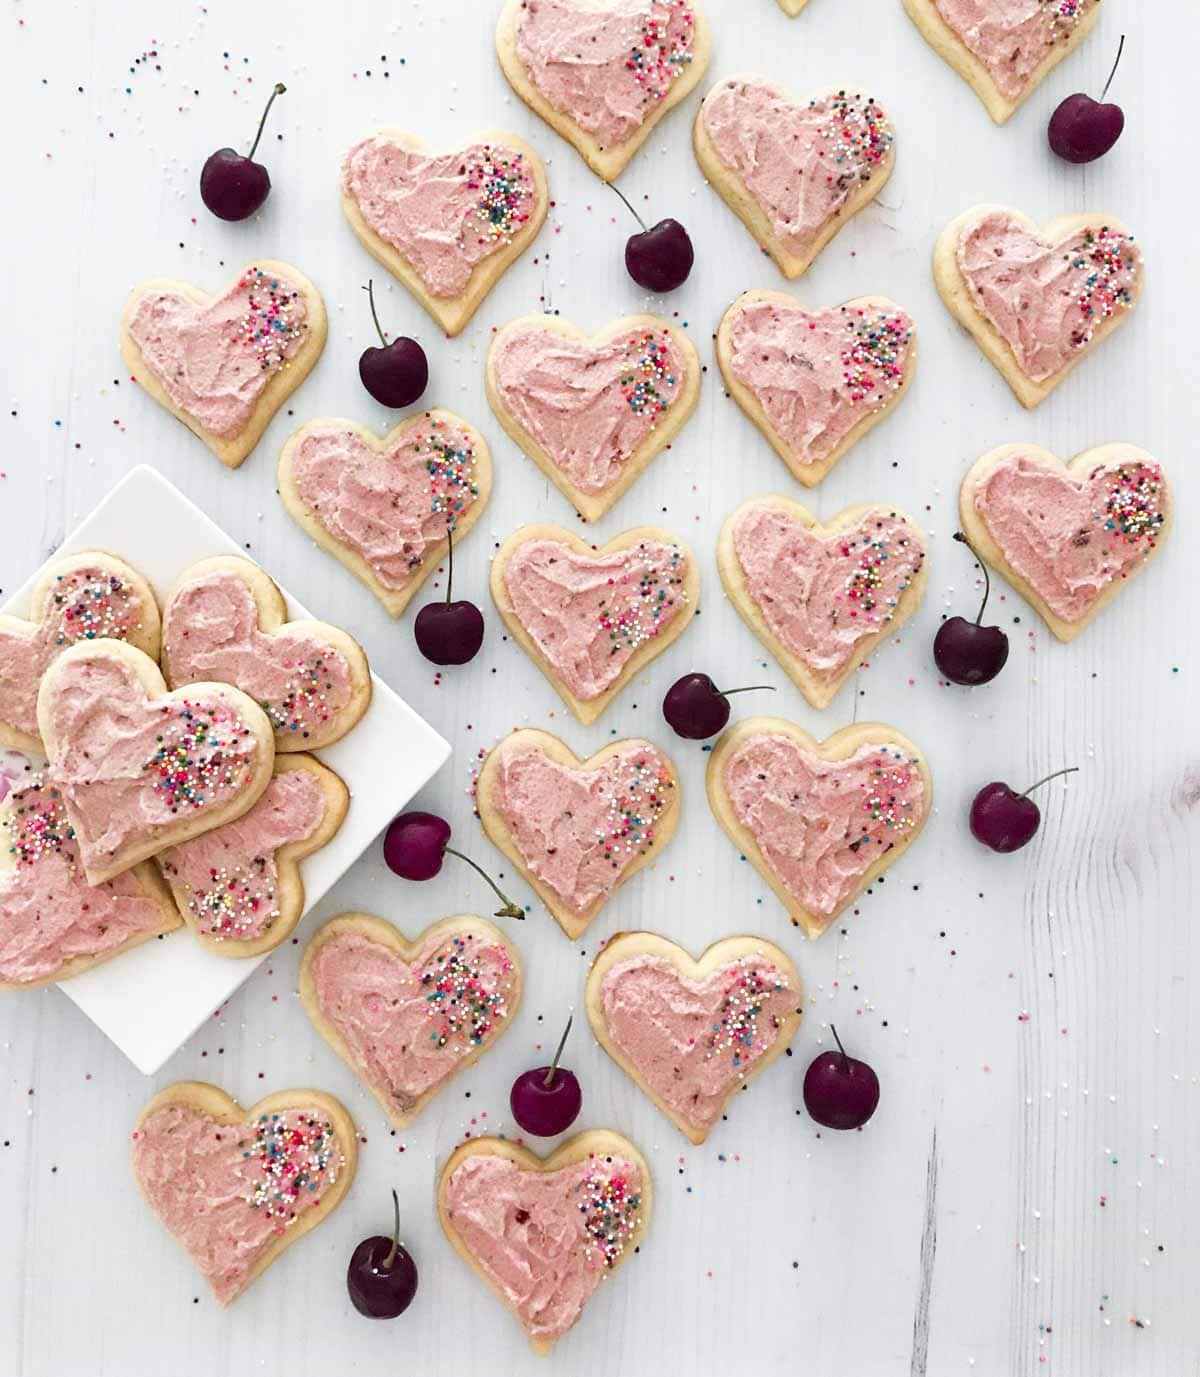 A plate of cherry sugar cookies and buttercream frosting with sprinkles scattered on top.